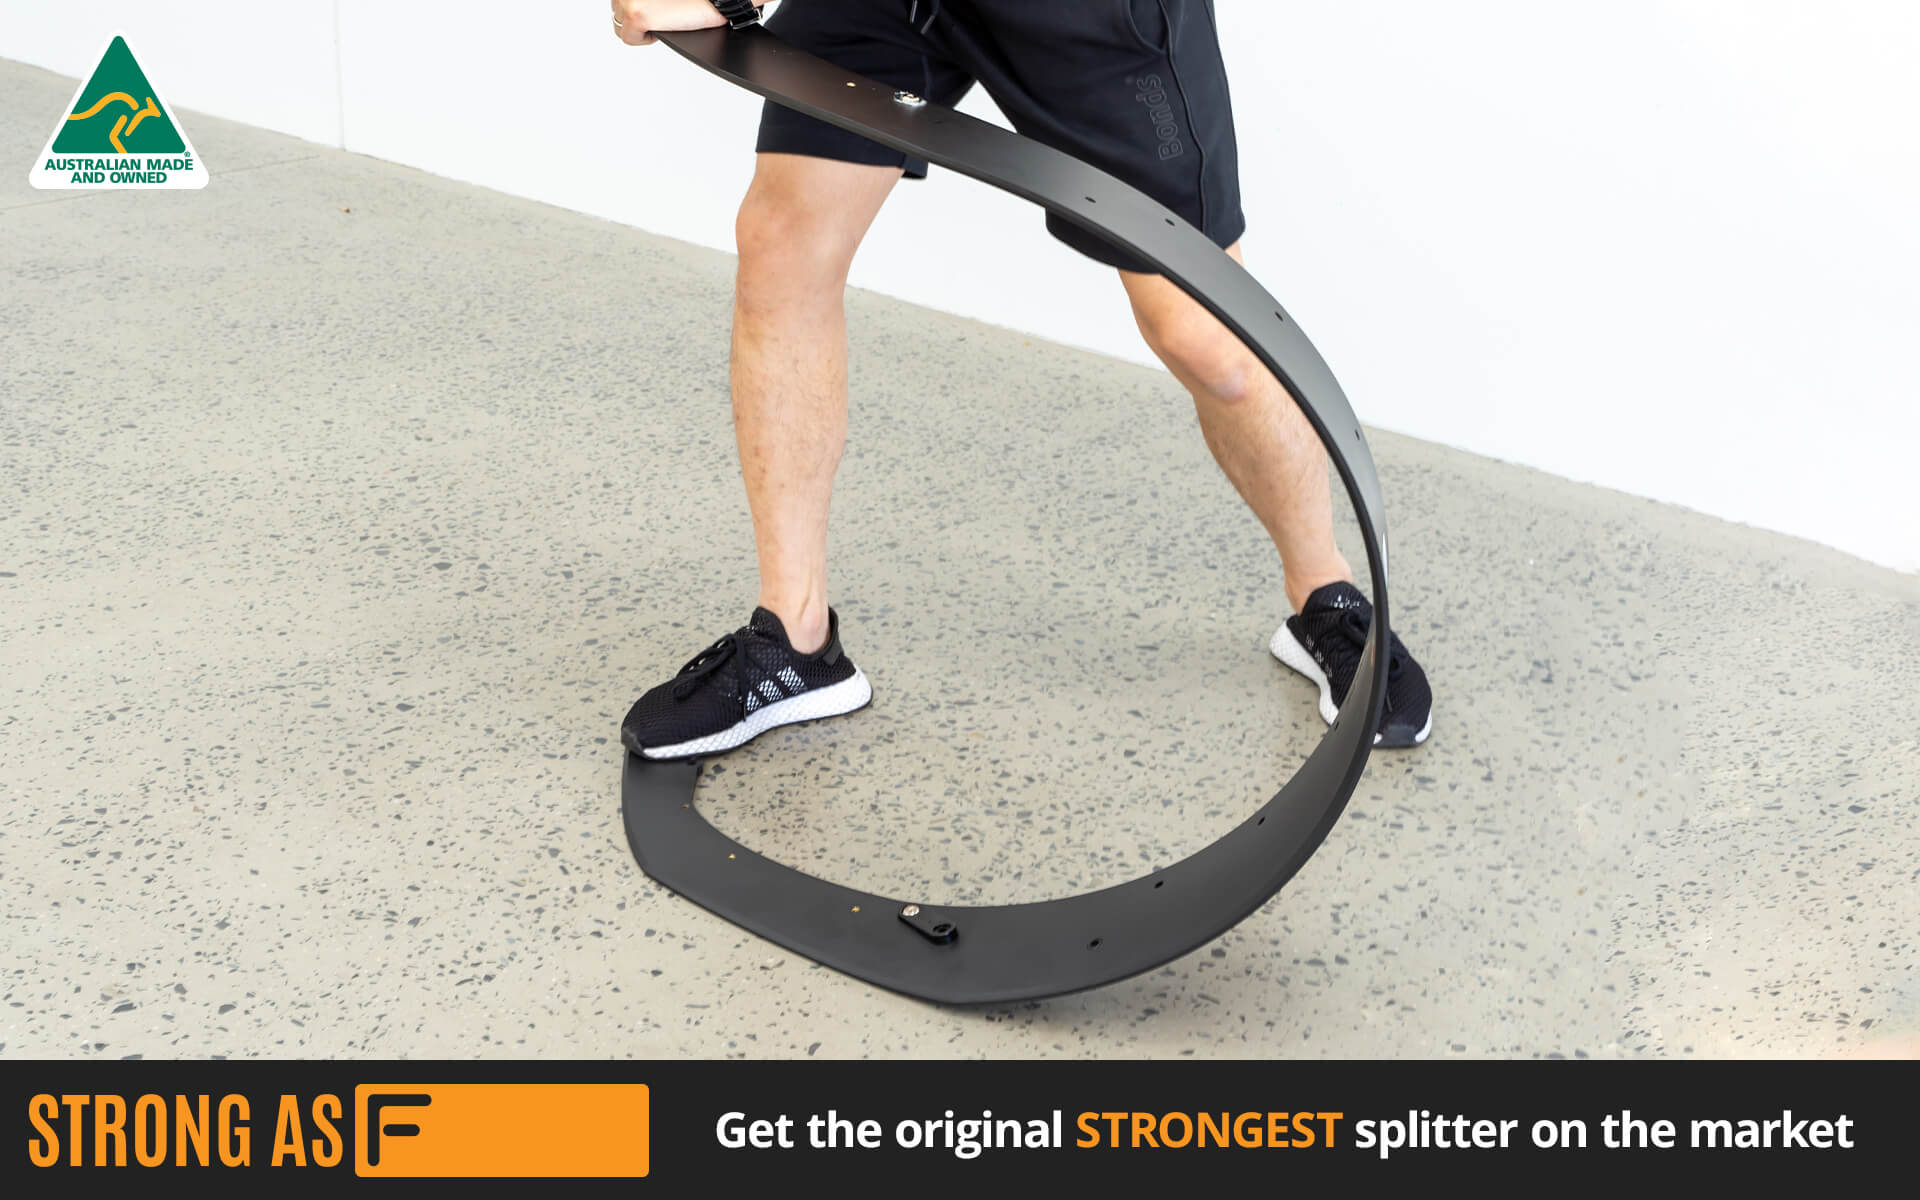 Strong As F - The Original Strongest Lip Splitter